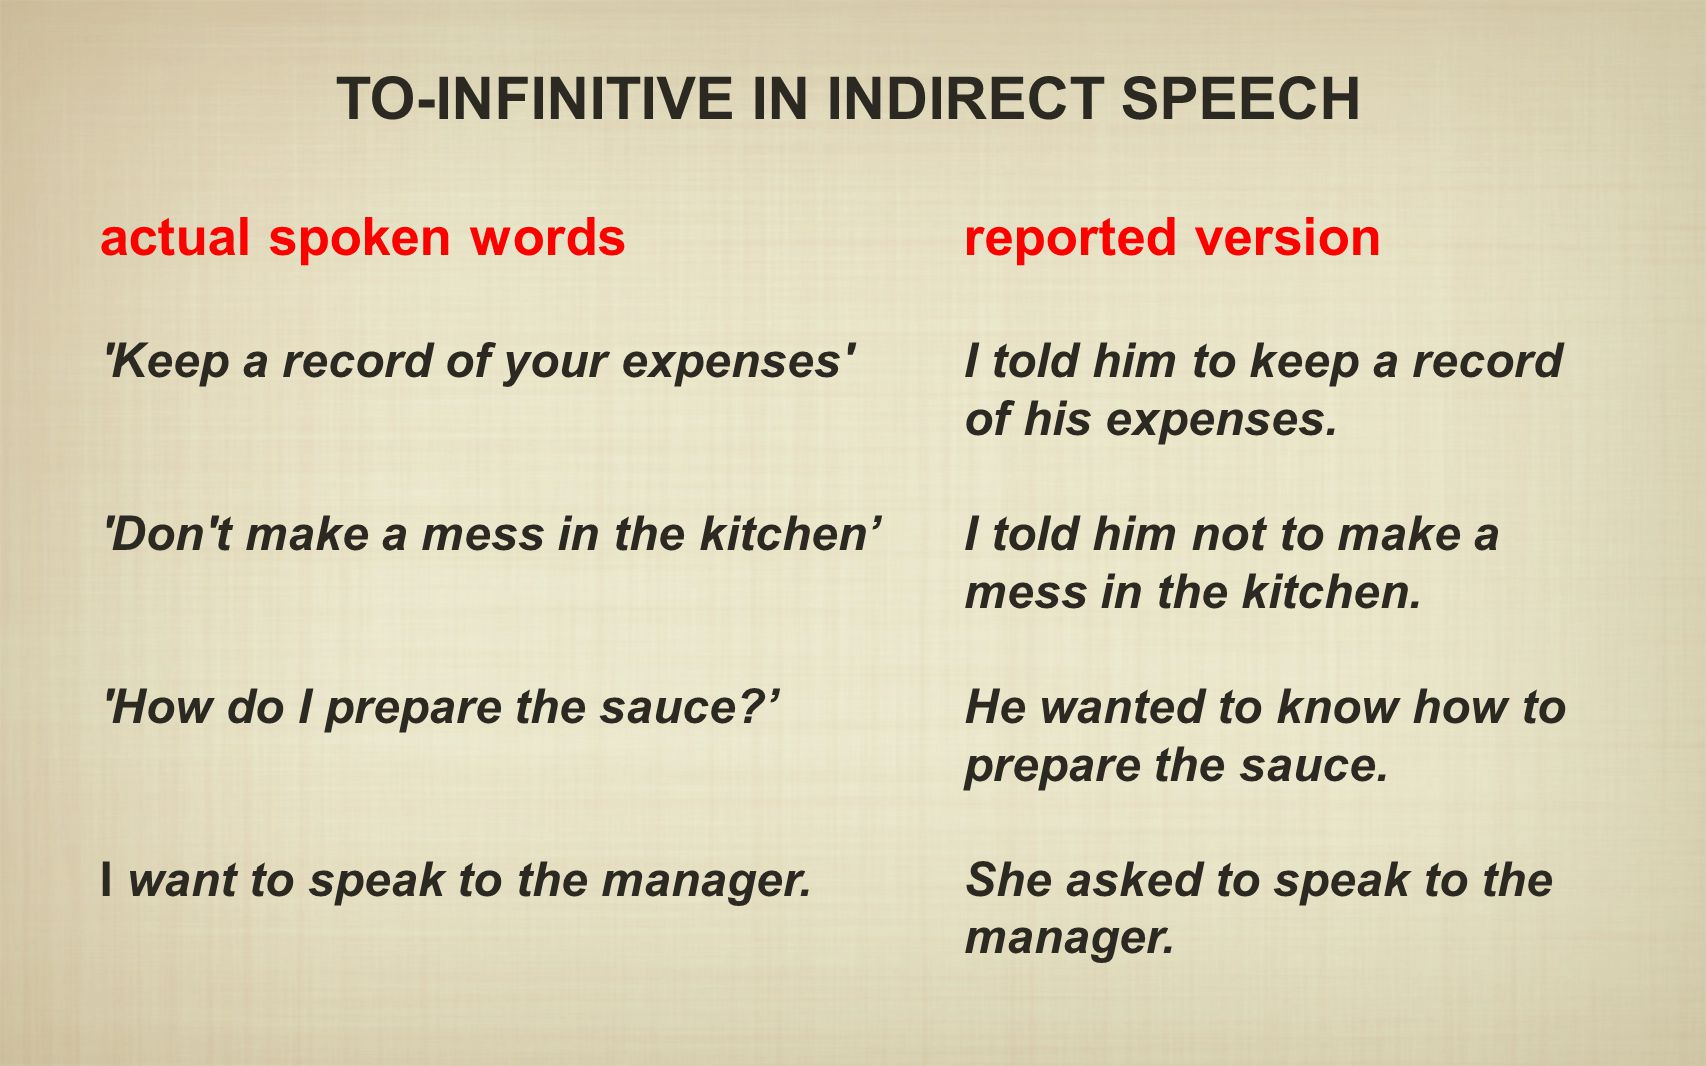 TO-INFINITIVE IN INDIRECT SPEECH